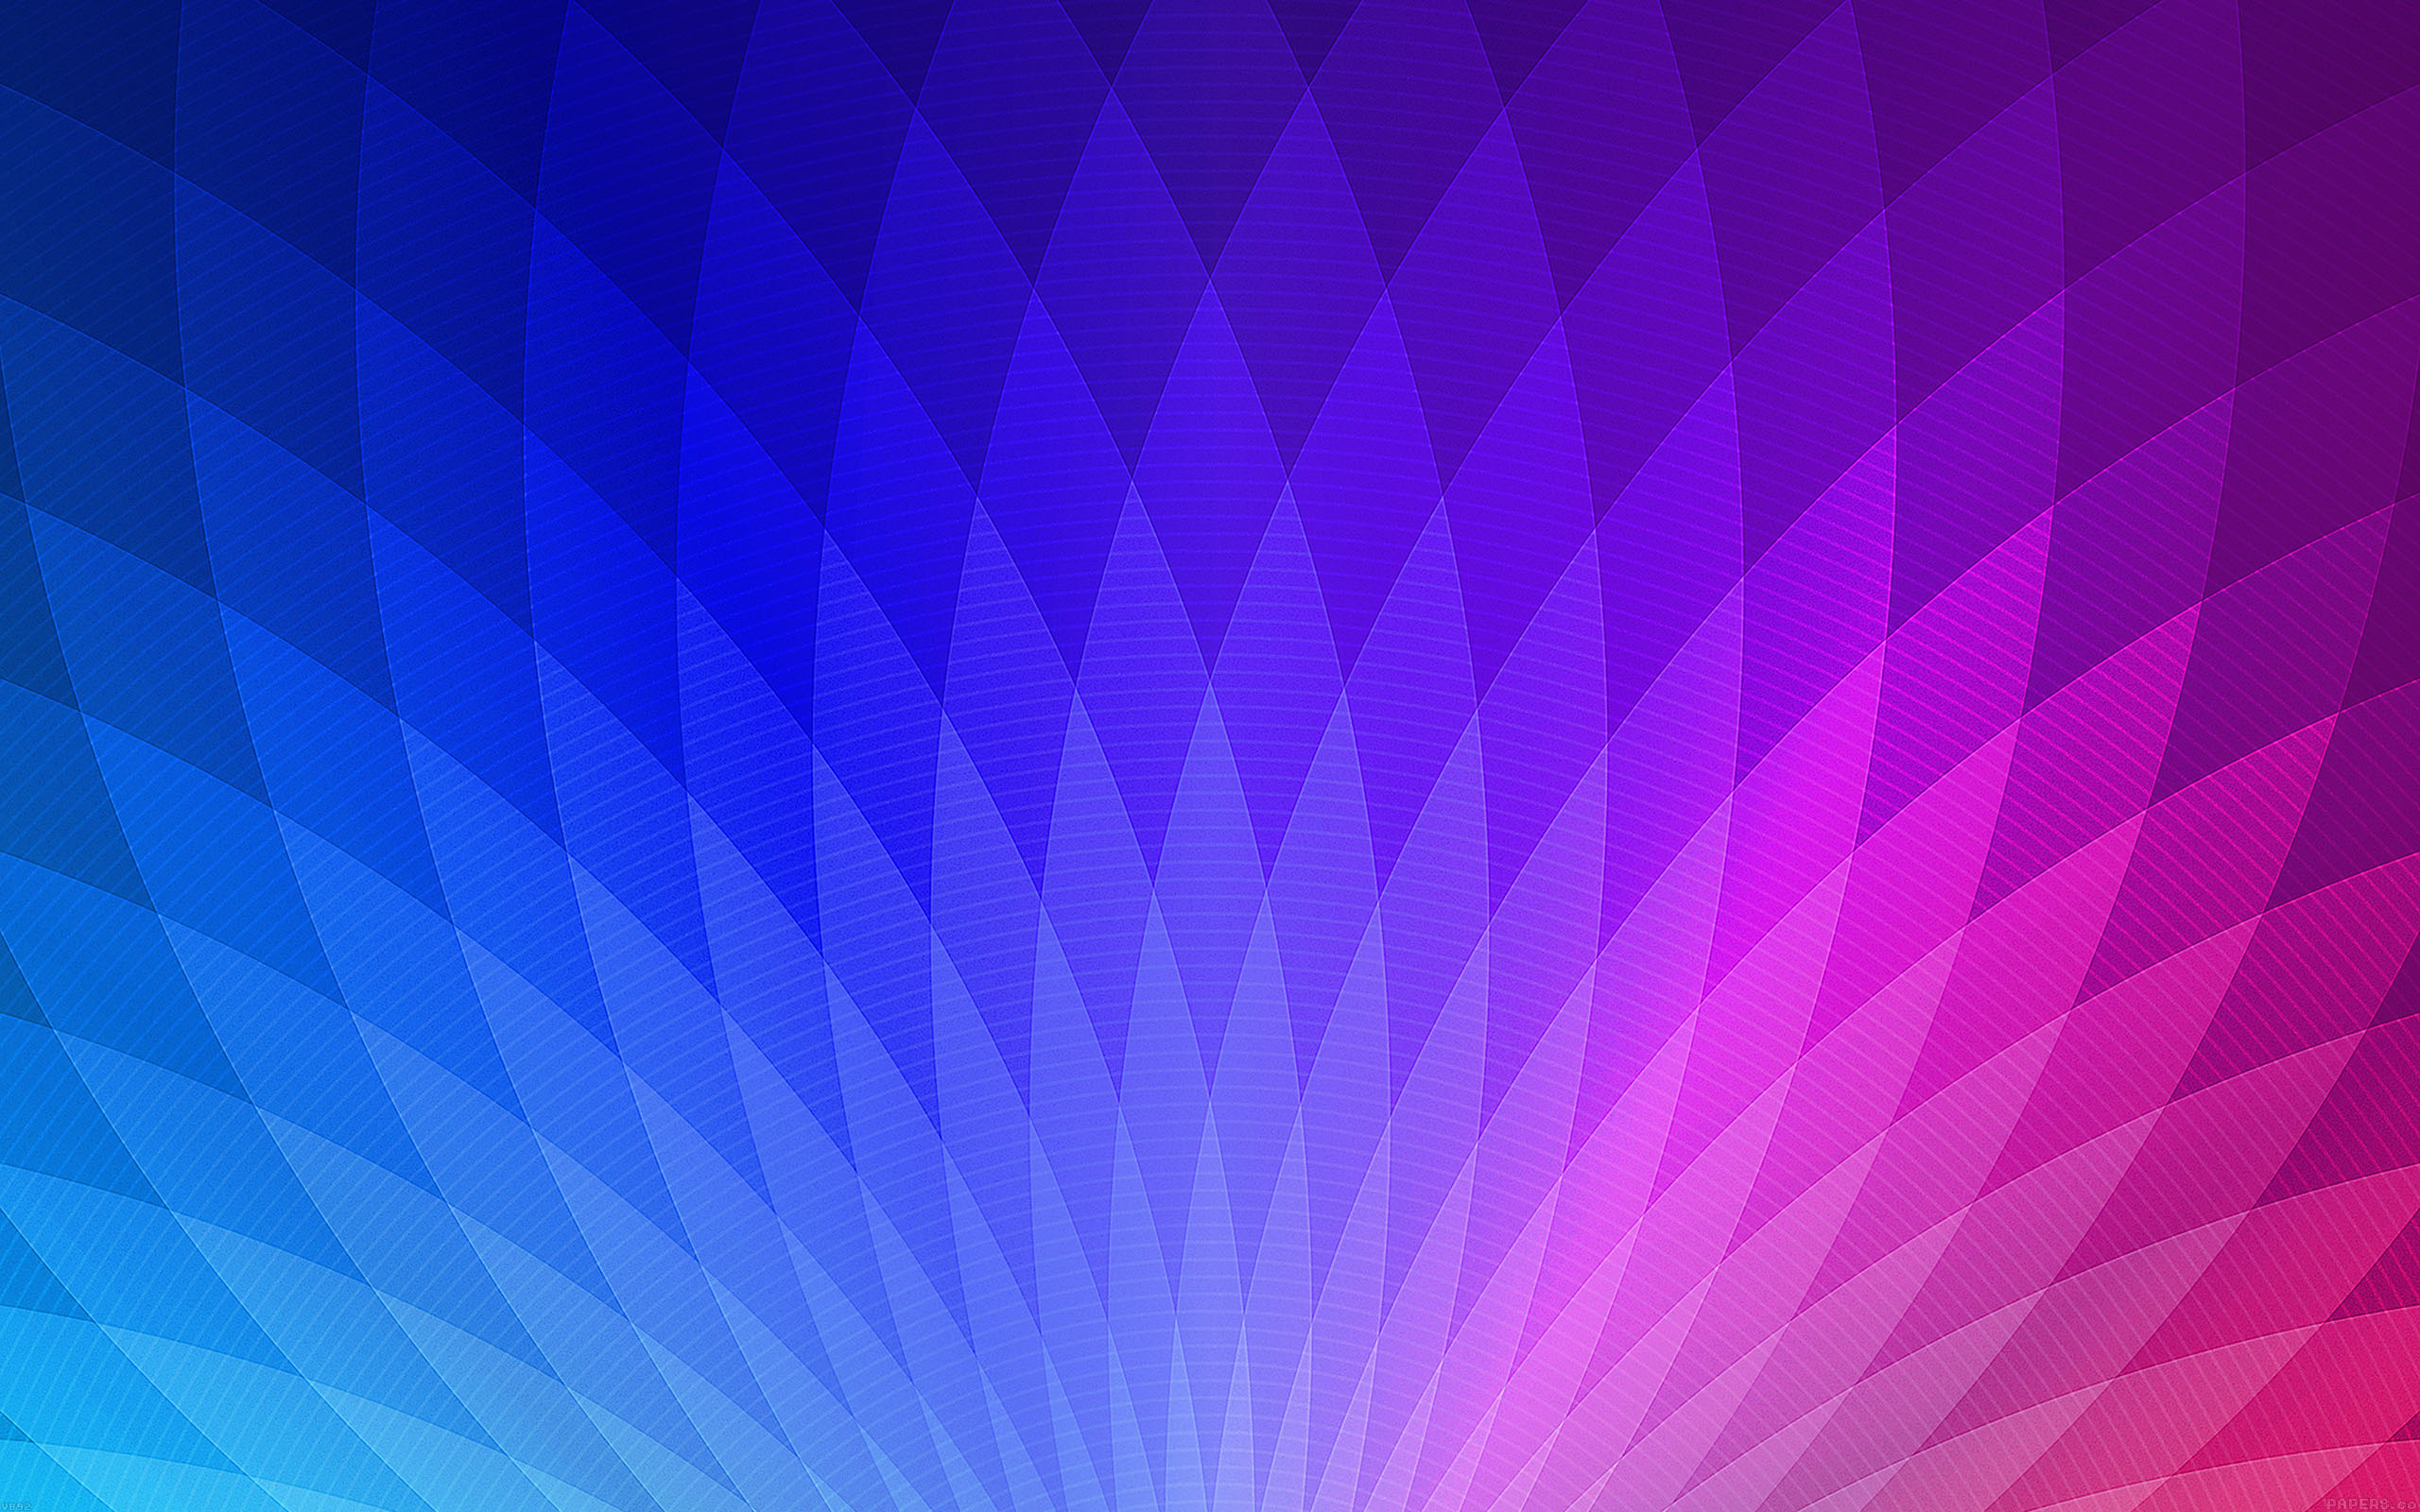 Cute Hd Wallpapers For Iphone 5 Vb92 Wallpaper Rainbow Blue Lights Patterns Art Papers Co